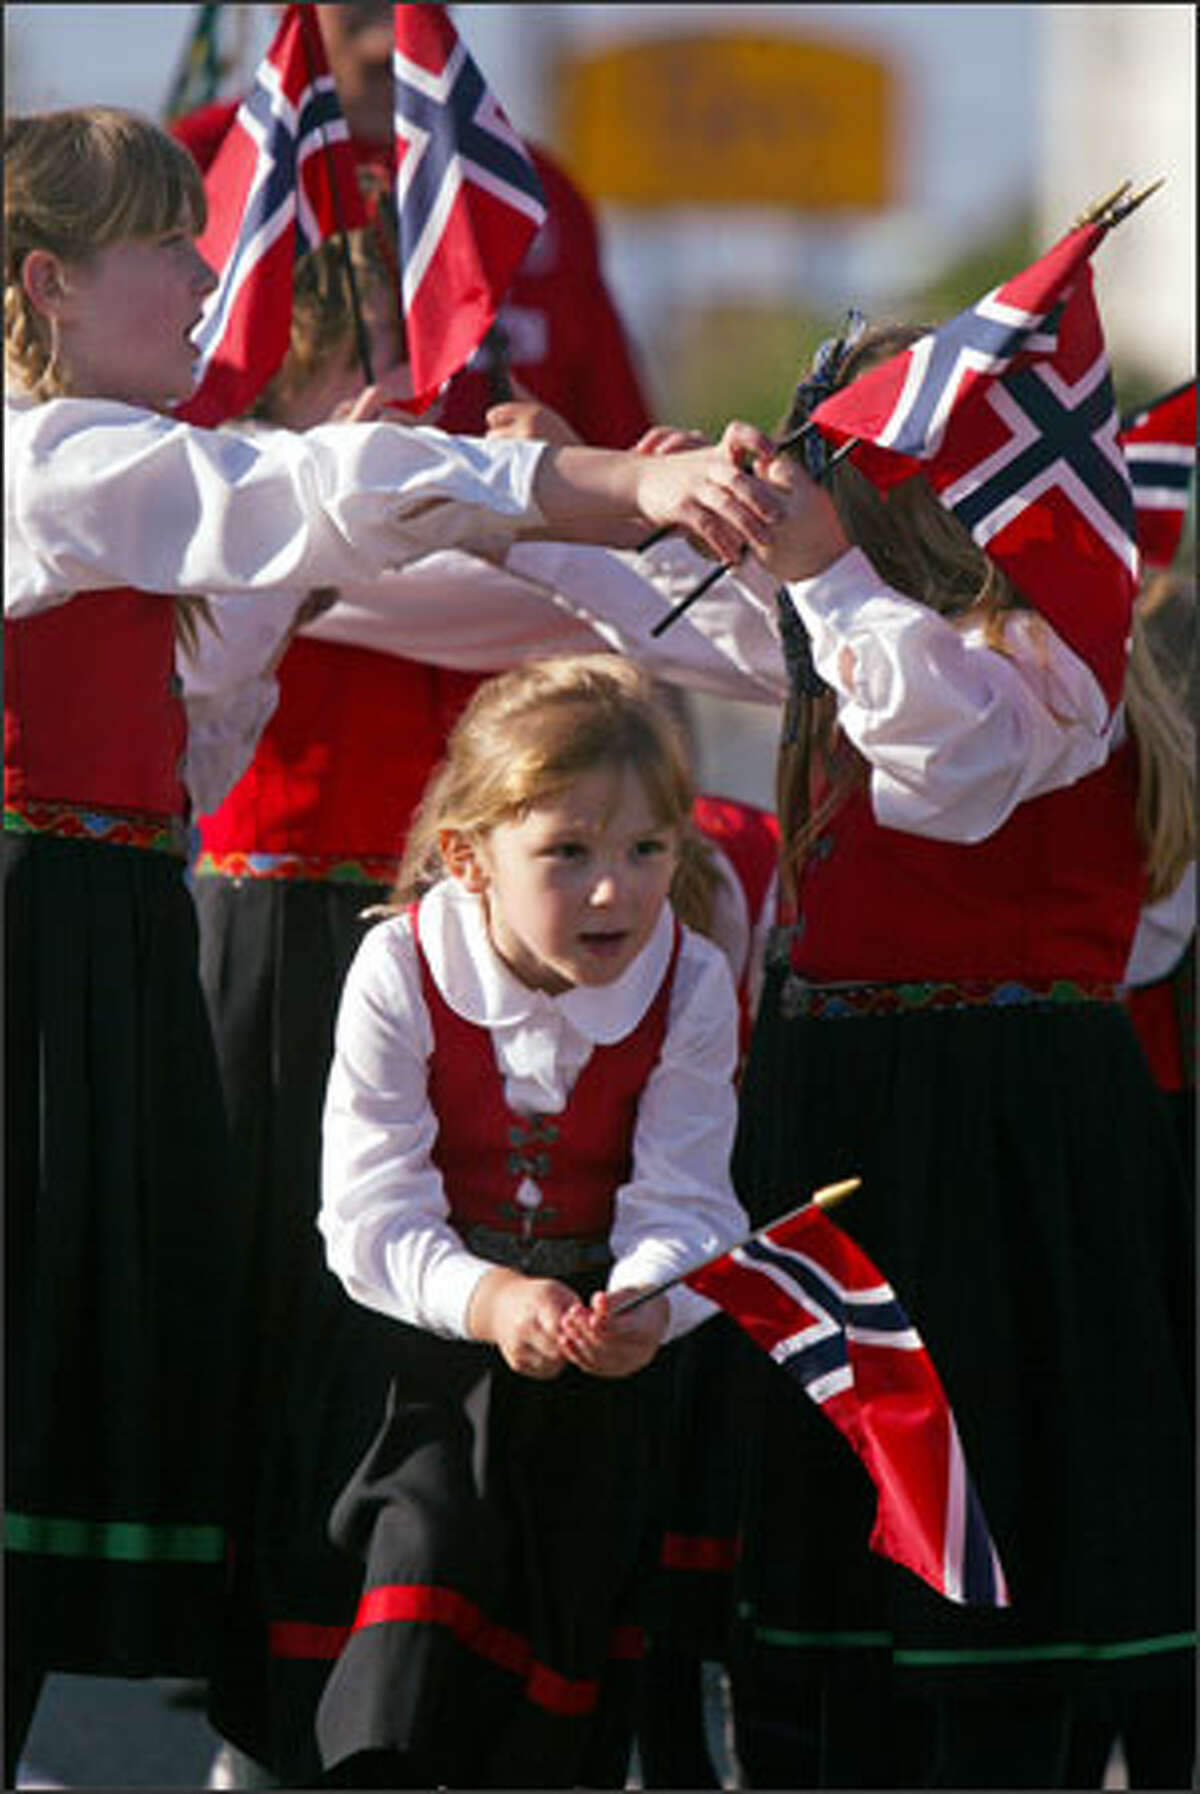 The Young Scandia Dancers from Whidbey Island, bedecked in traditional Scandinavian regalia and holding Norwegian flags, perform in the parade.